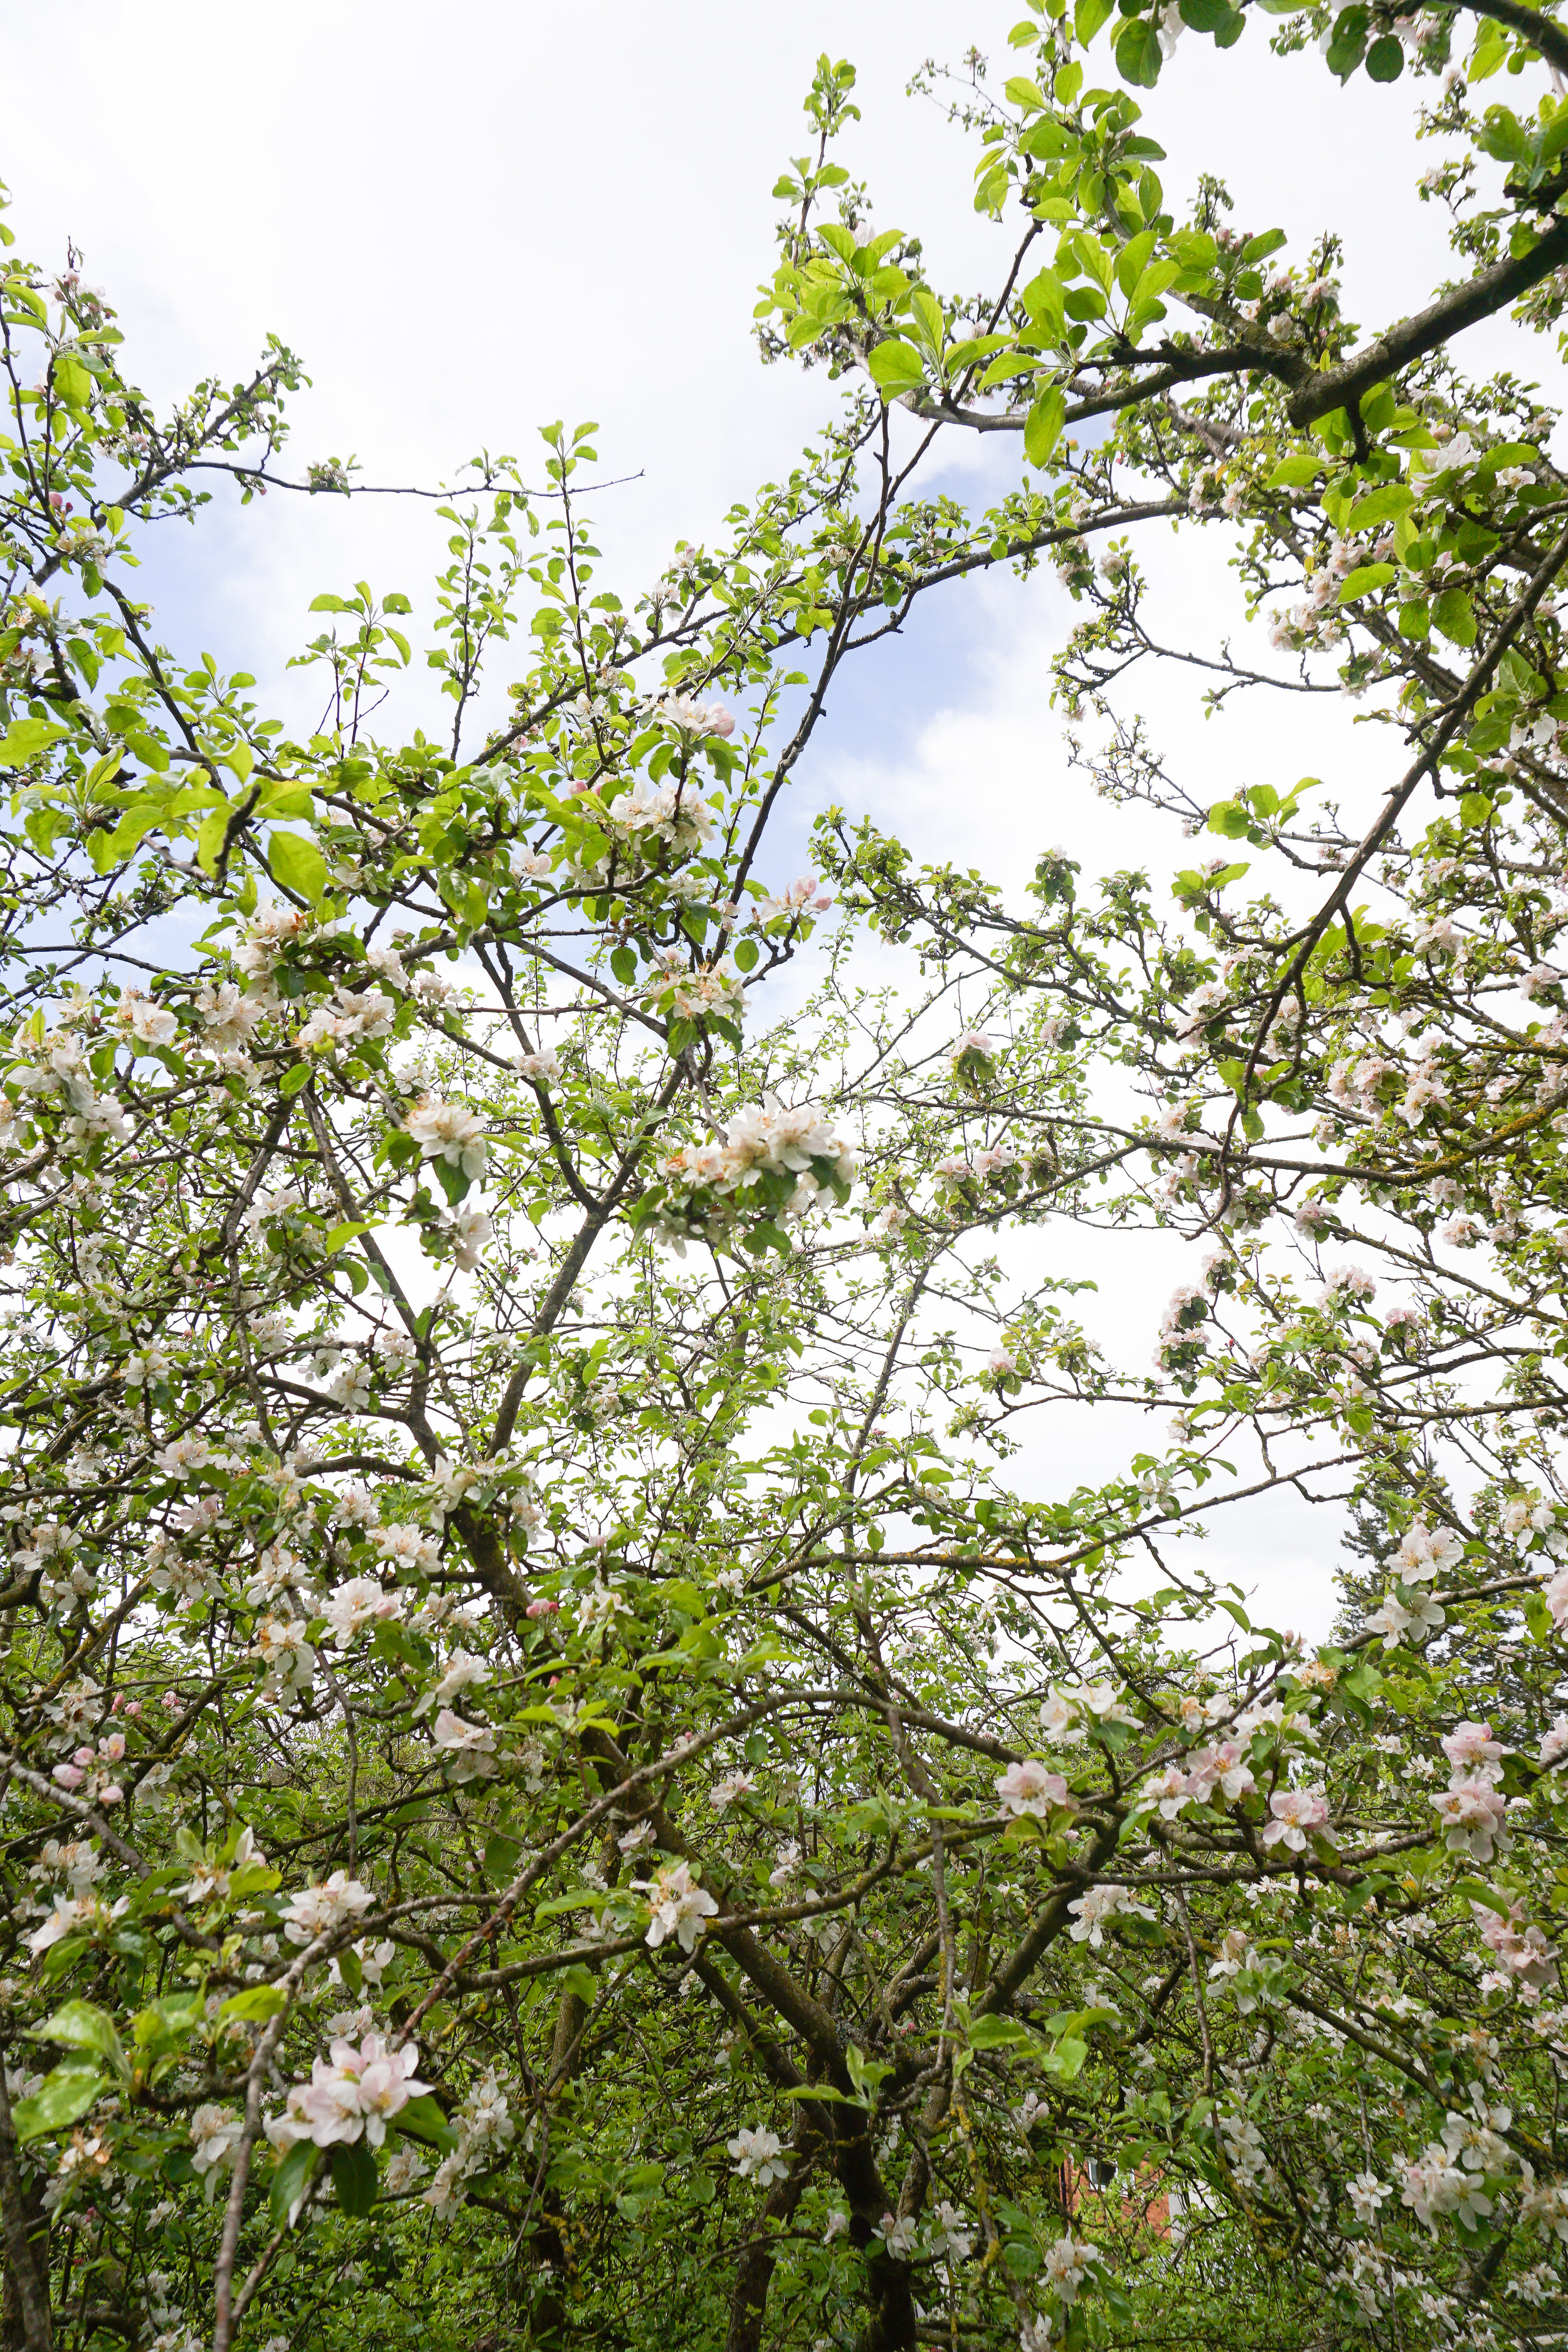 Apple blossom trees in North Wales